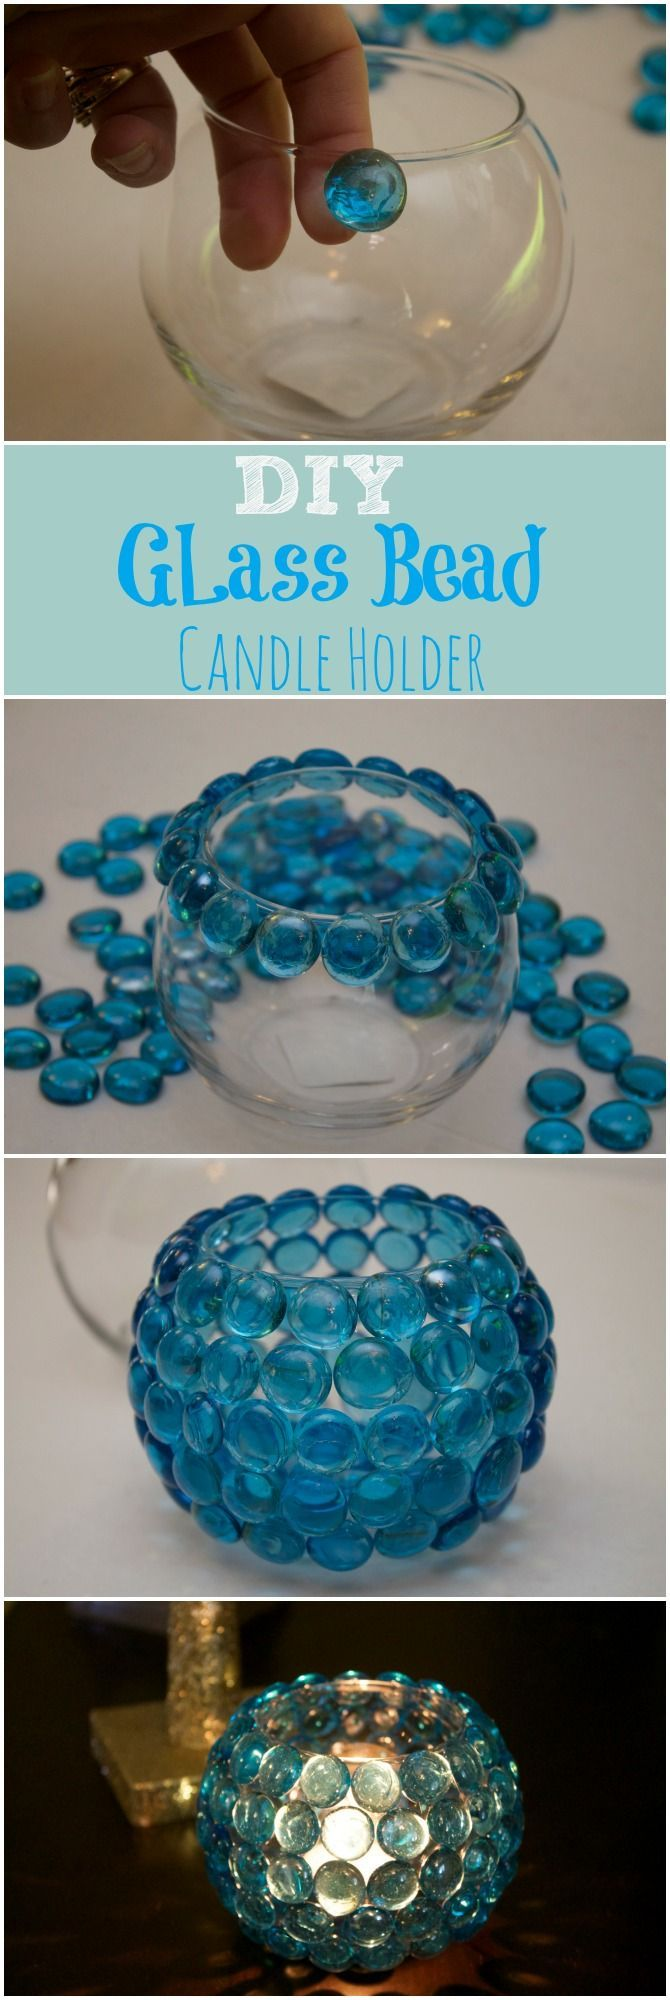 DIY Glass Bead Candle Holder. Super Easy to Make. Dollar Store Crafts are the best! These would make great centerpieces for a wedding.